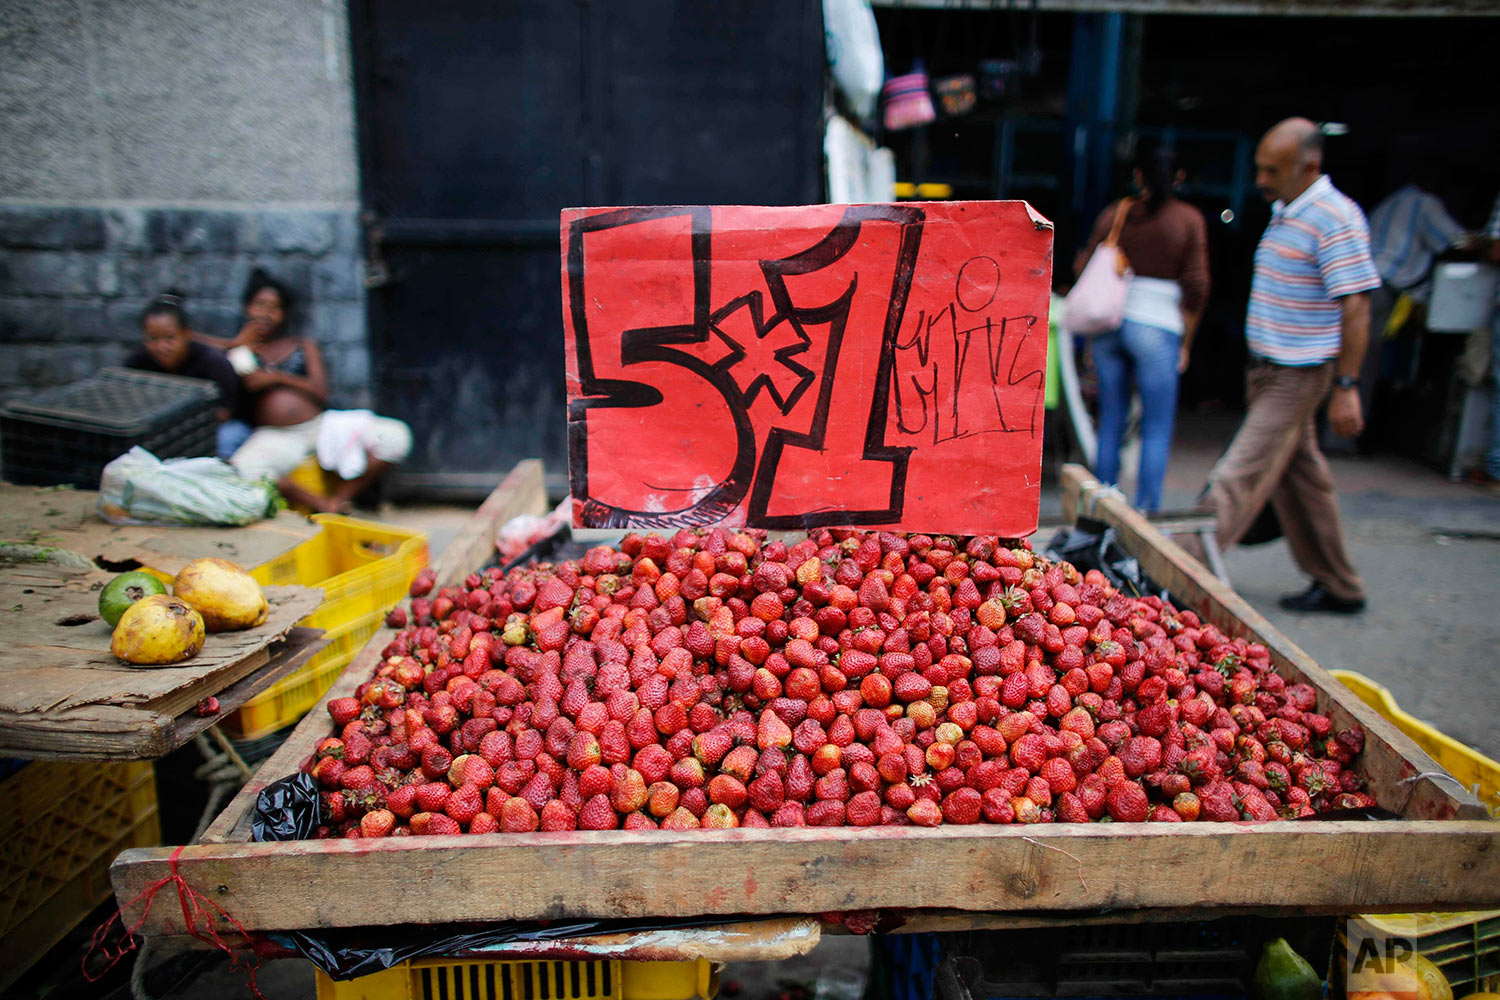 A market stall offers strawberries, Aug. 23, 2017, Caracas, Venezuela. (AP Photo/Ariana Cubillos)